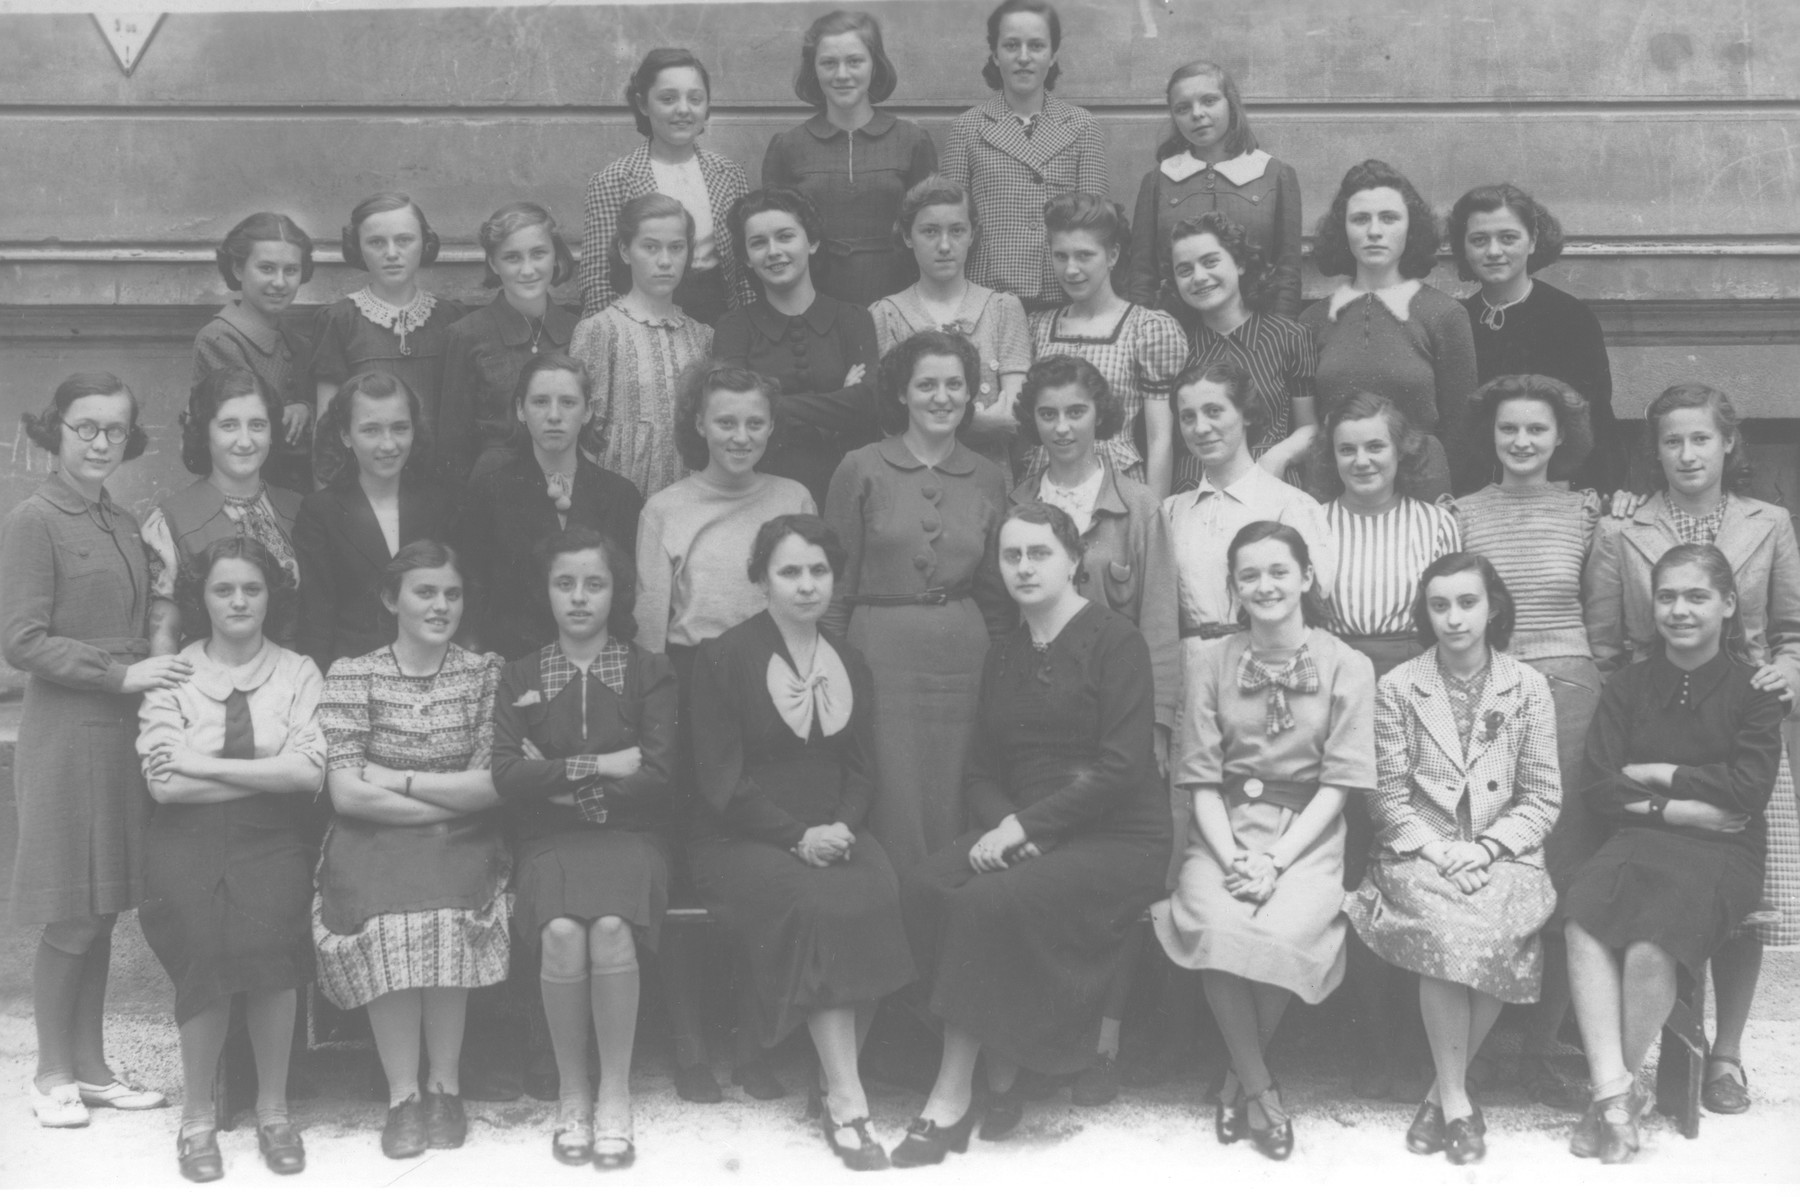 Class portrait of female students at a school in Zagreb attended by both Jews and non-Jews.  Among those pictured is Florica Kabilio (second row from the top at the far right).